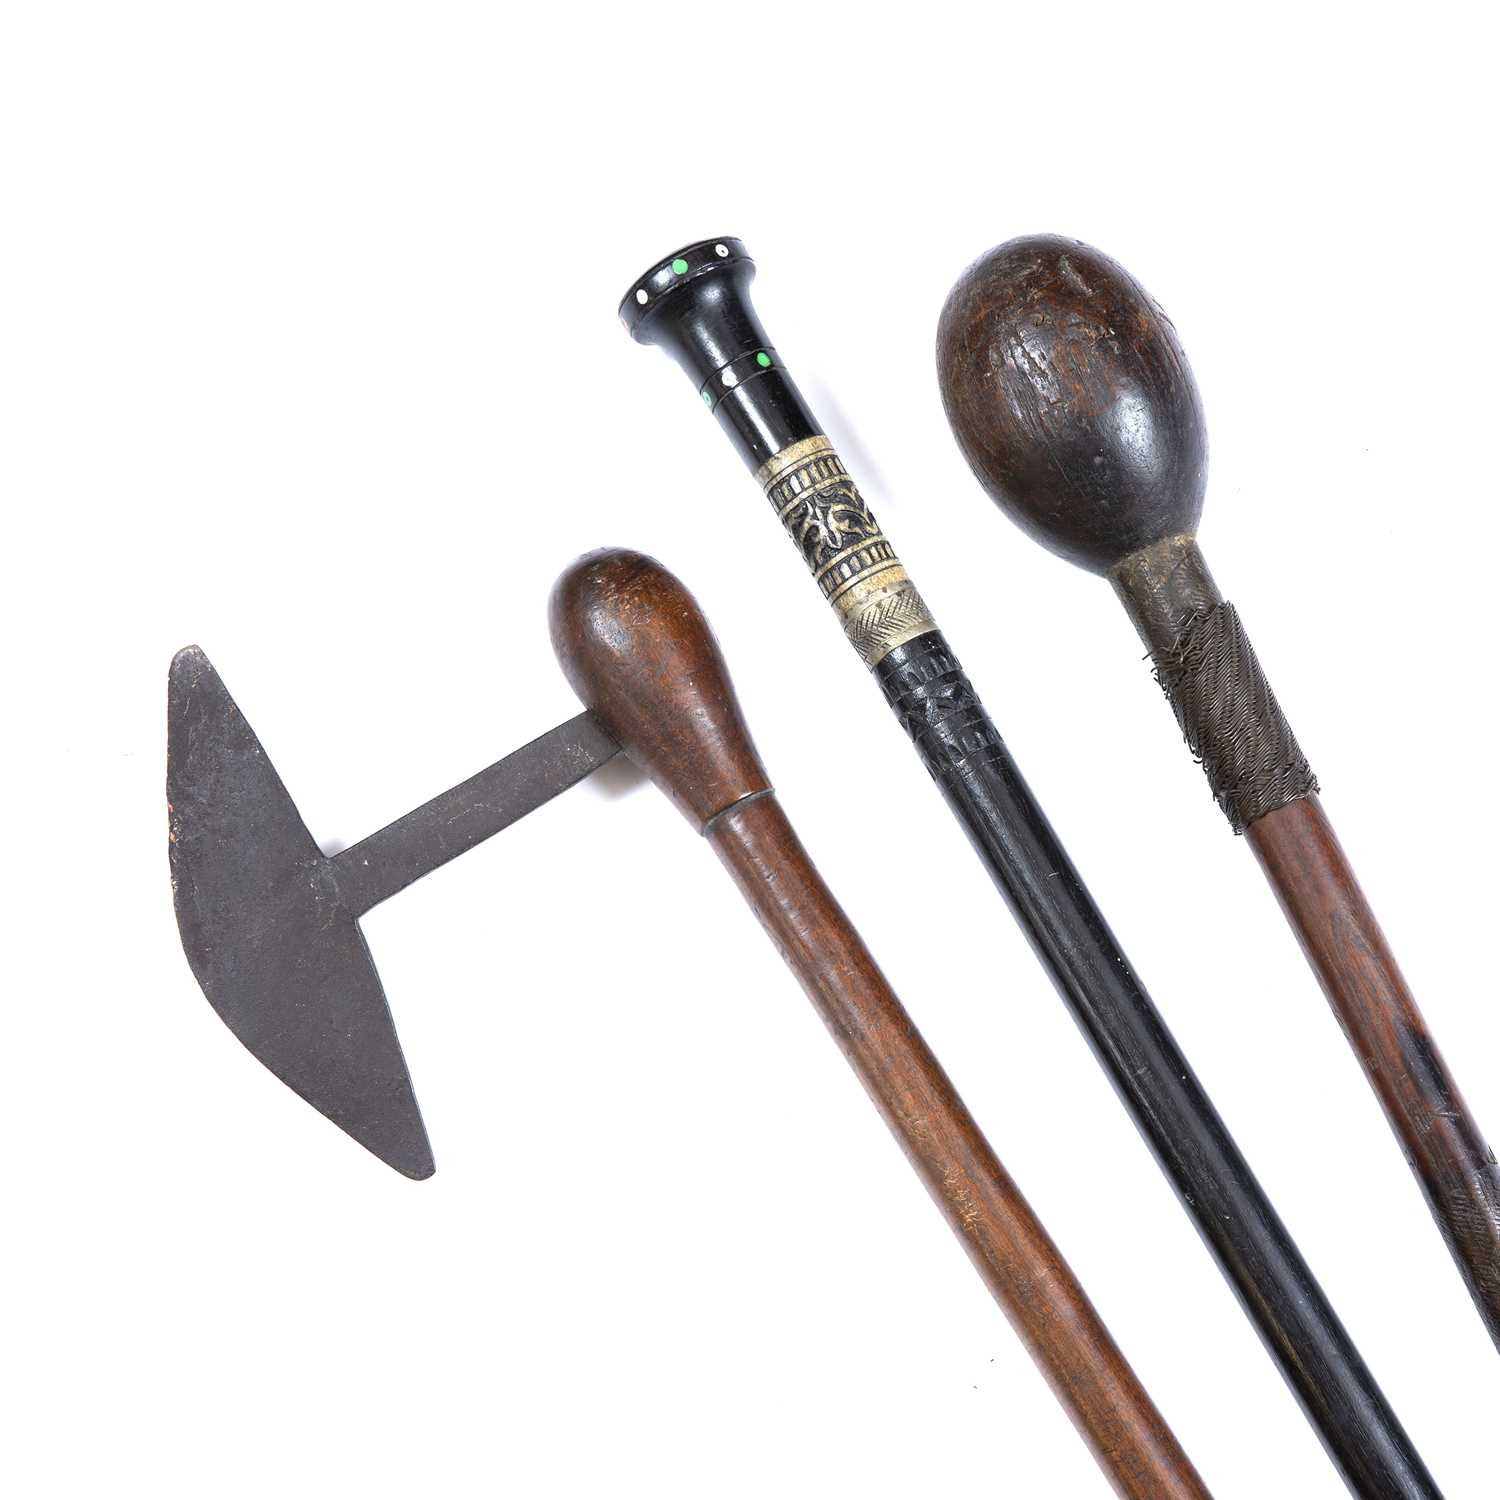 A South African Zulu knobkerrie, carved wood with metal wire grips together with an axe and a